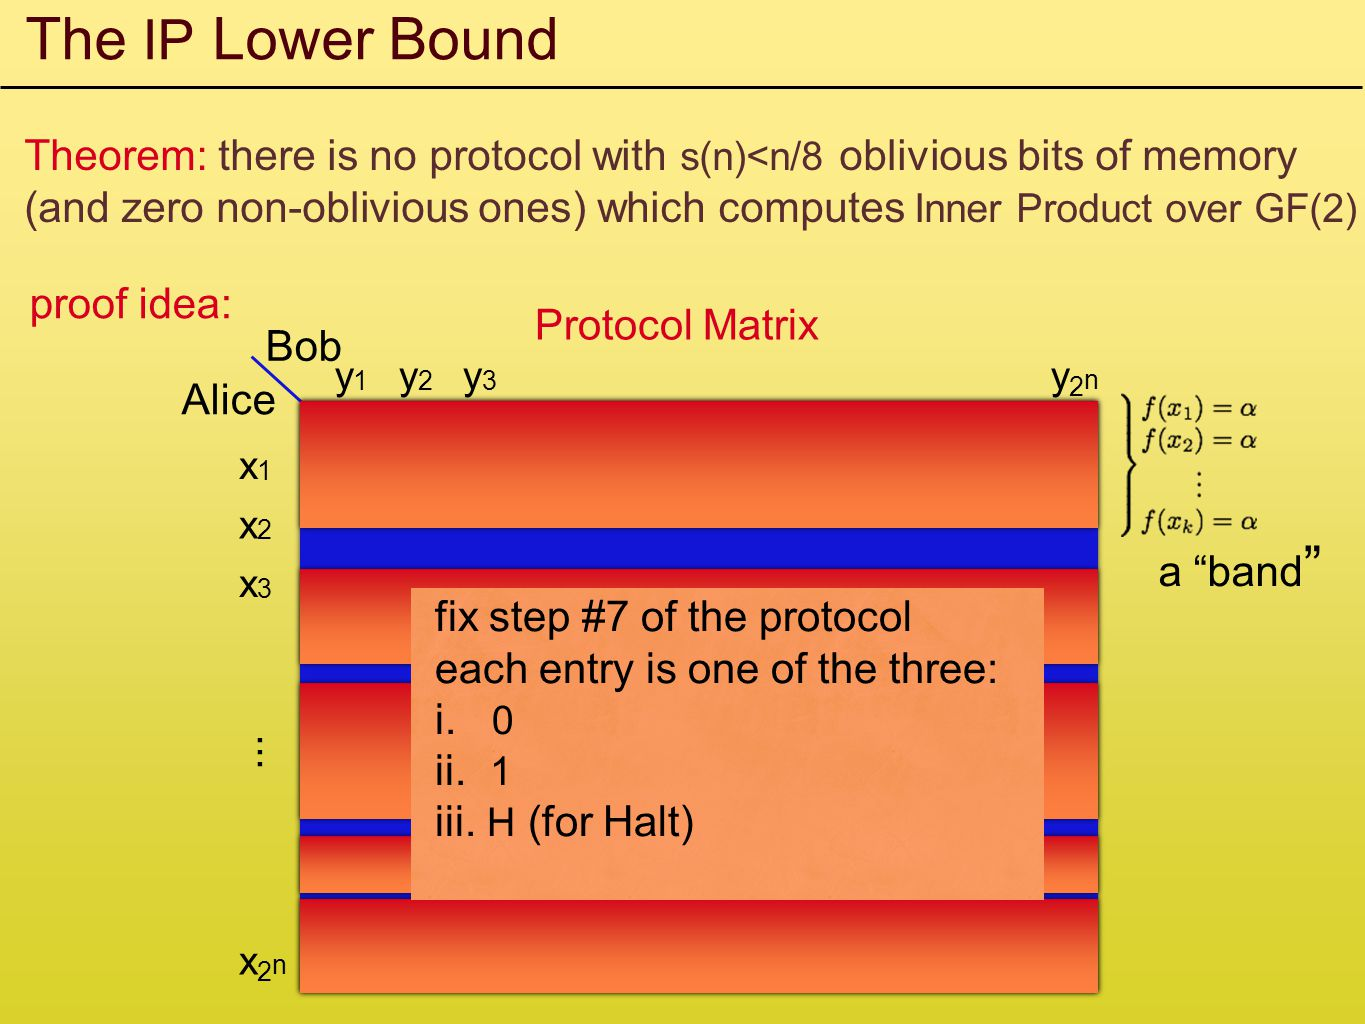 The IP Lower Bound Theorem: there is no protocol with s(n)<n/8 oblivious bits of memory (and zero non-oblivious ones) which computes Inner Product over GF(2) proof idea: Alice Bob x1x1 x2x2 x3x3...